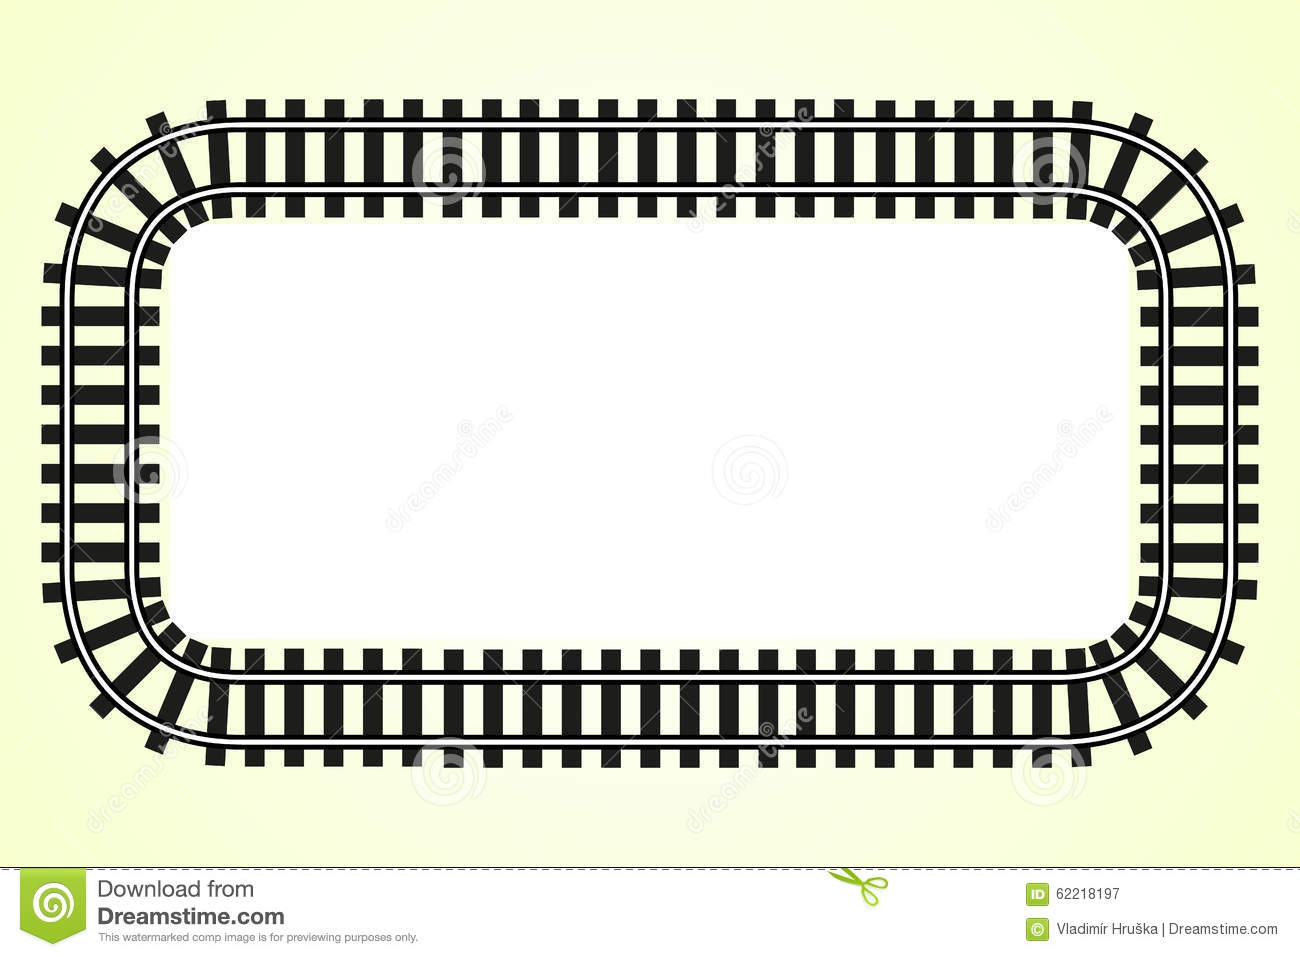 locomotive railroad track frame transport border stock Utility Pole Clip Art House Clip Art